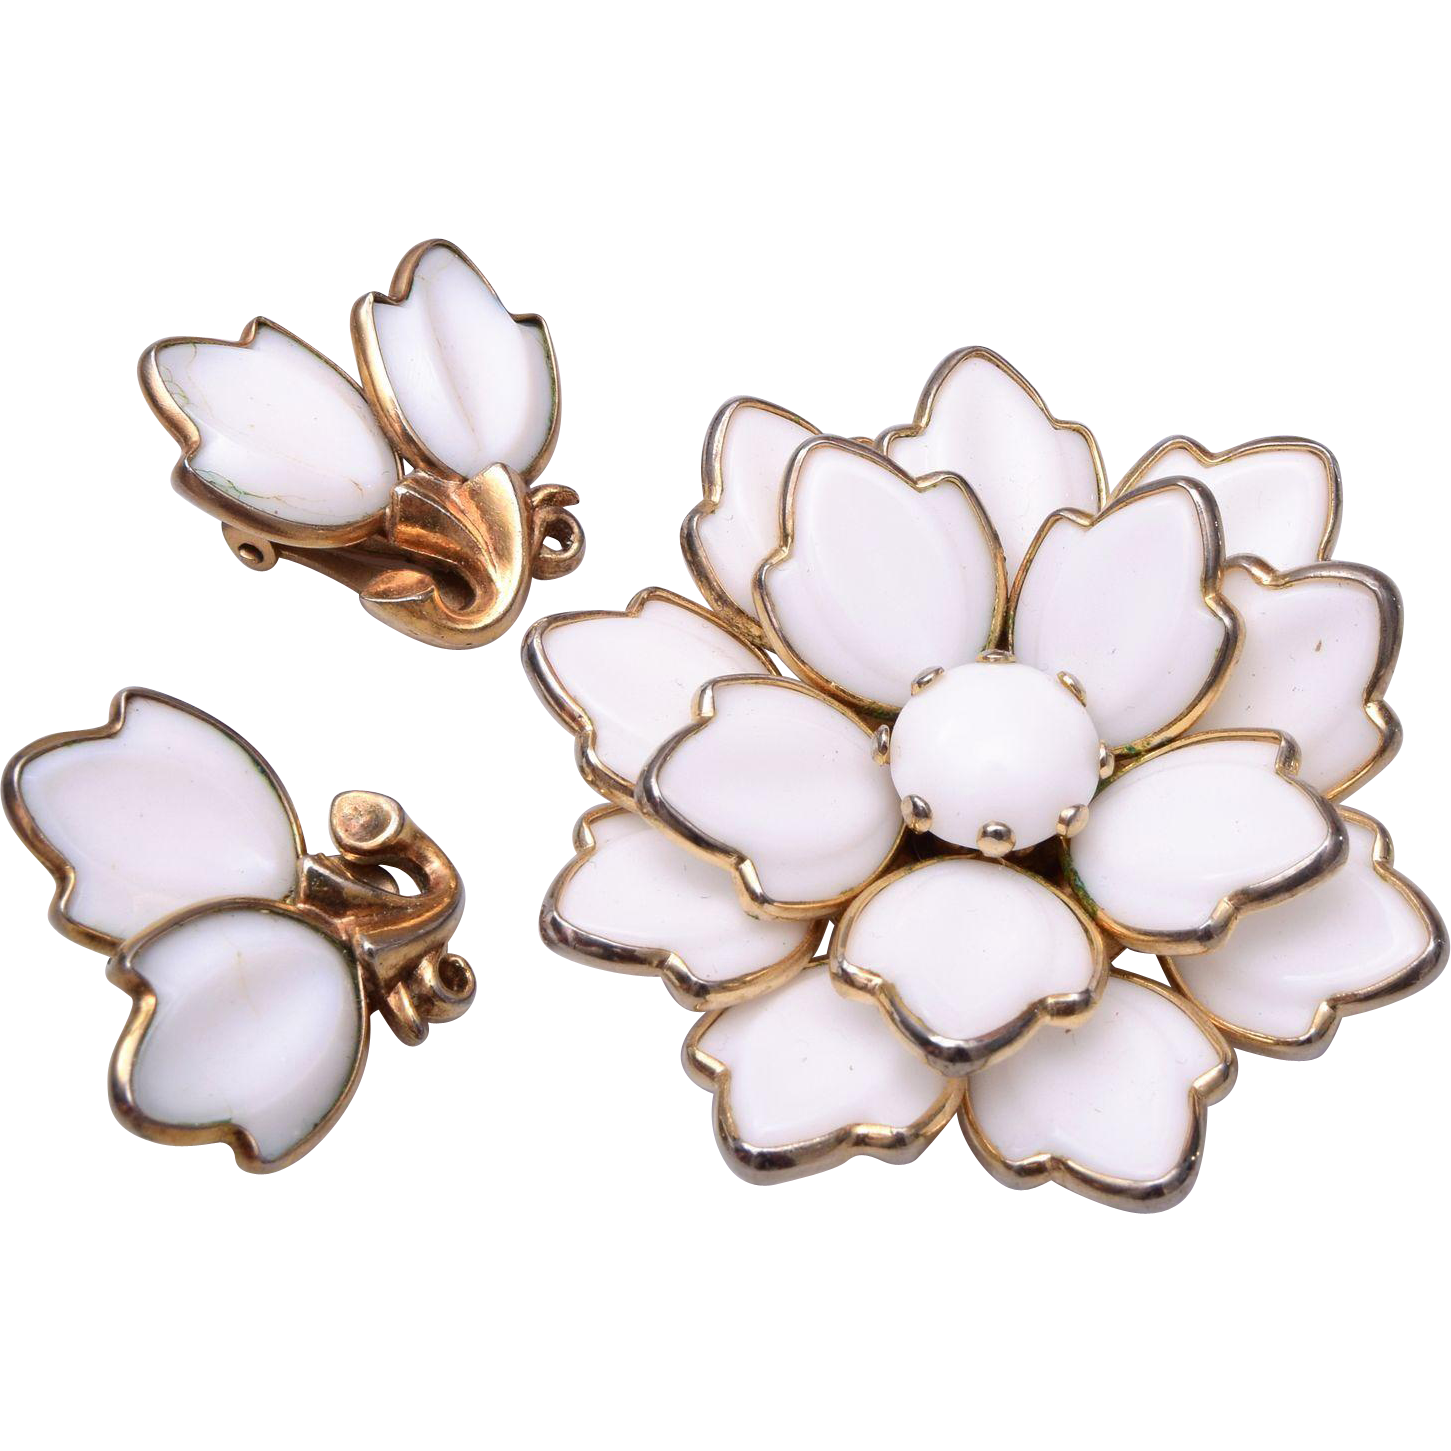 Trifari Pre 1955 Dogwood Milk Glass Brooch/Pendant and Earrings Set